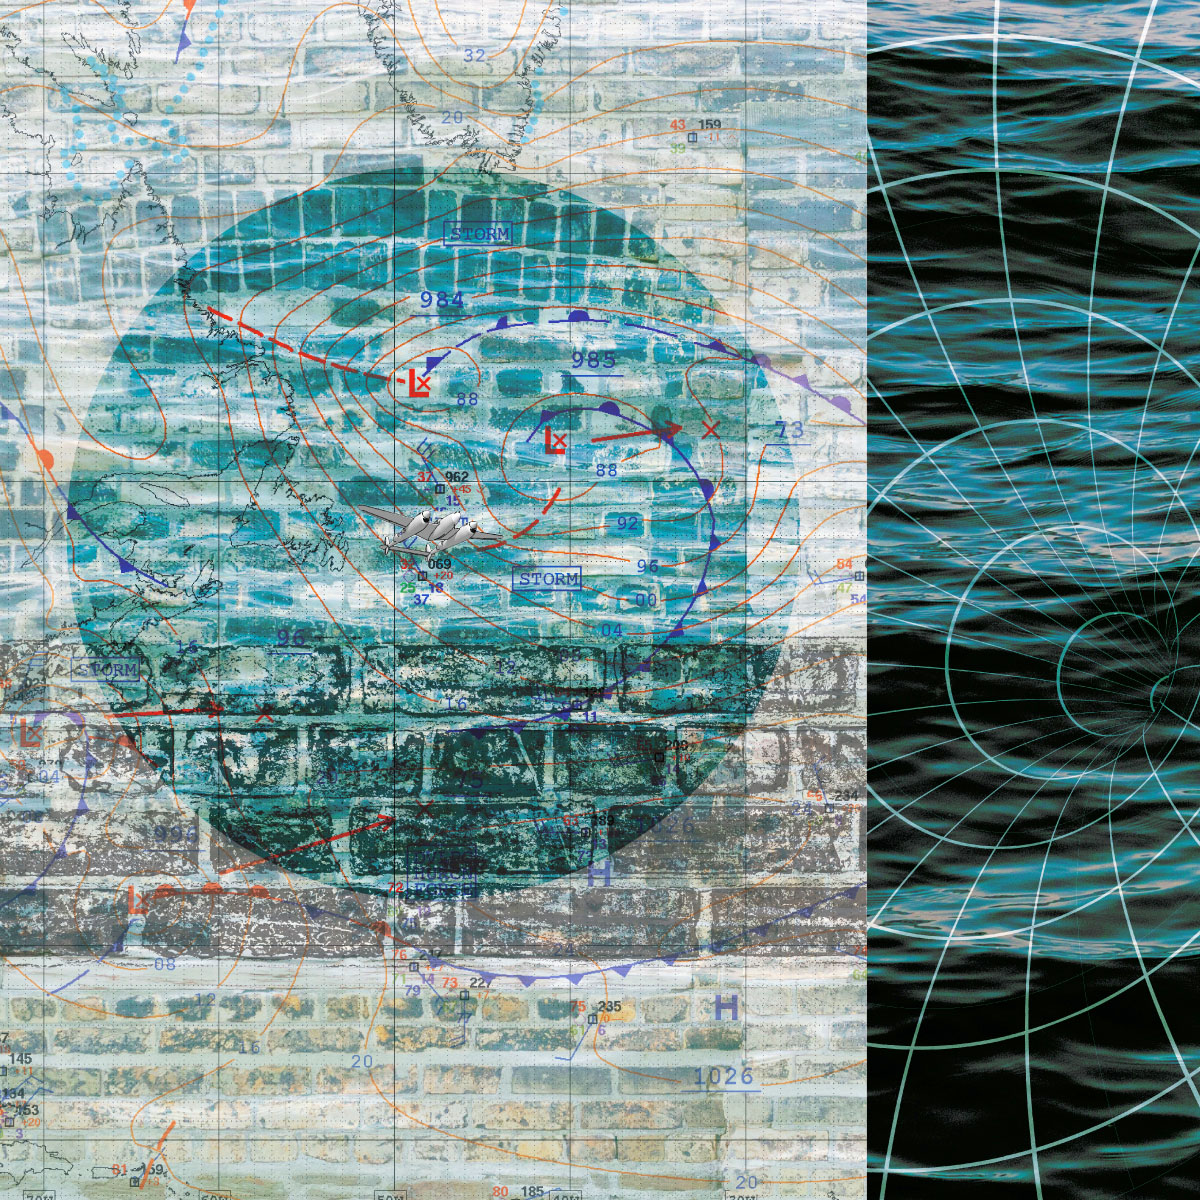 Collage of overlapping images including a brick wall, a blue circle, topographic map markings and lines of warped space-time over water